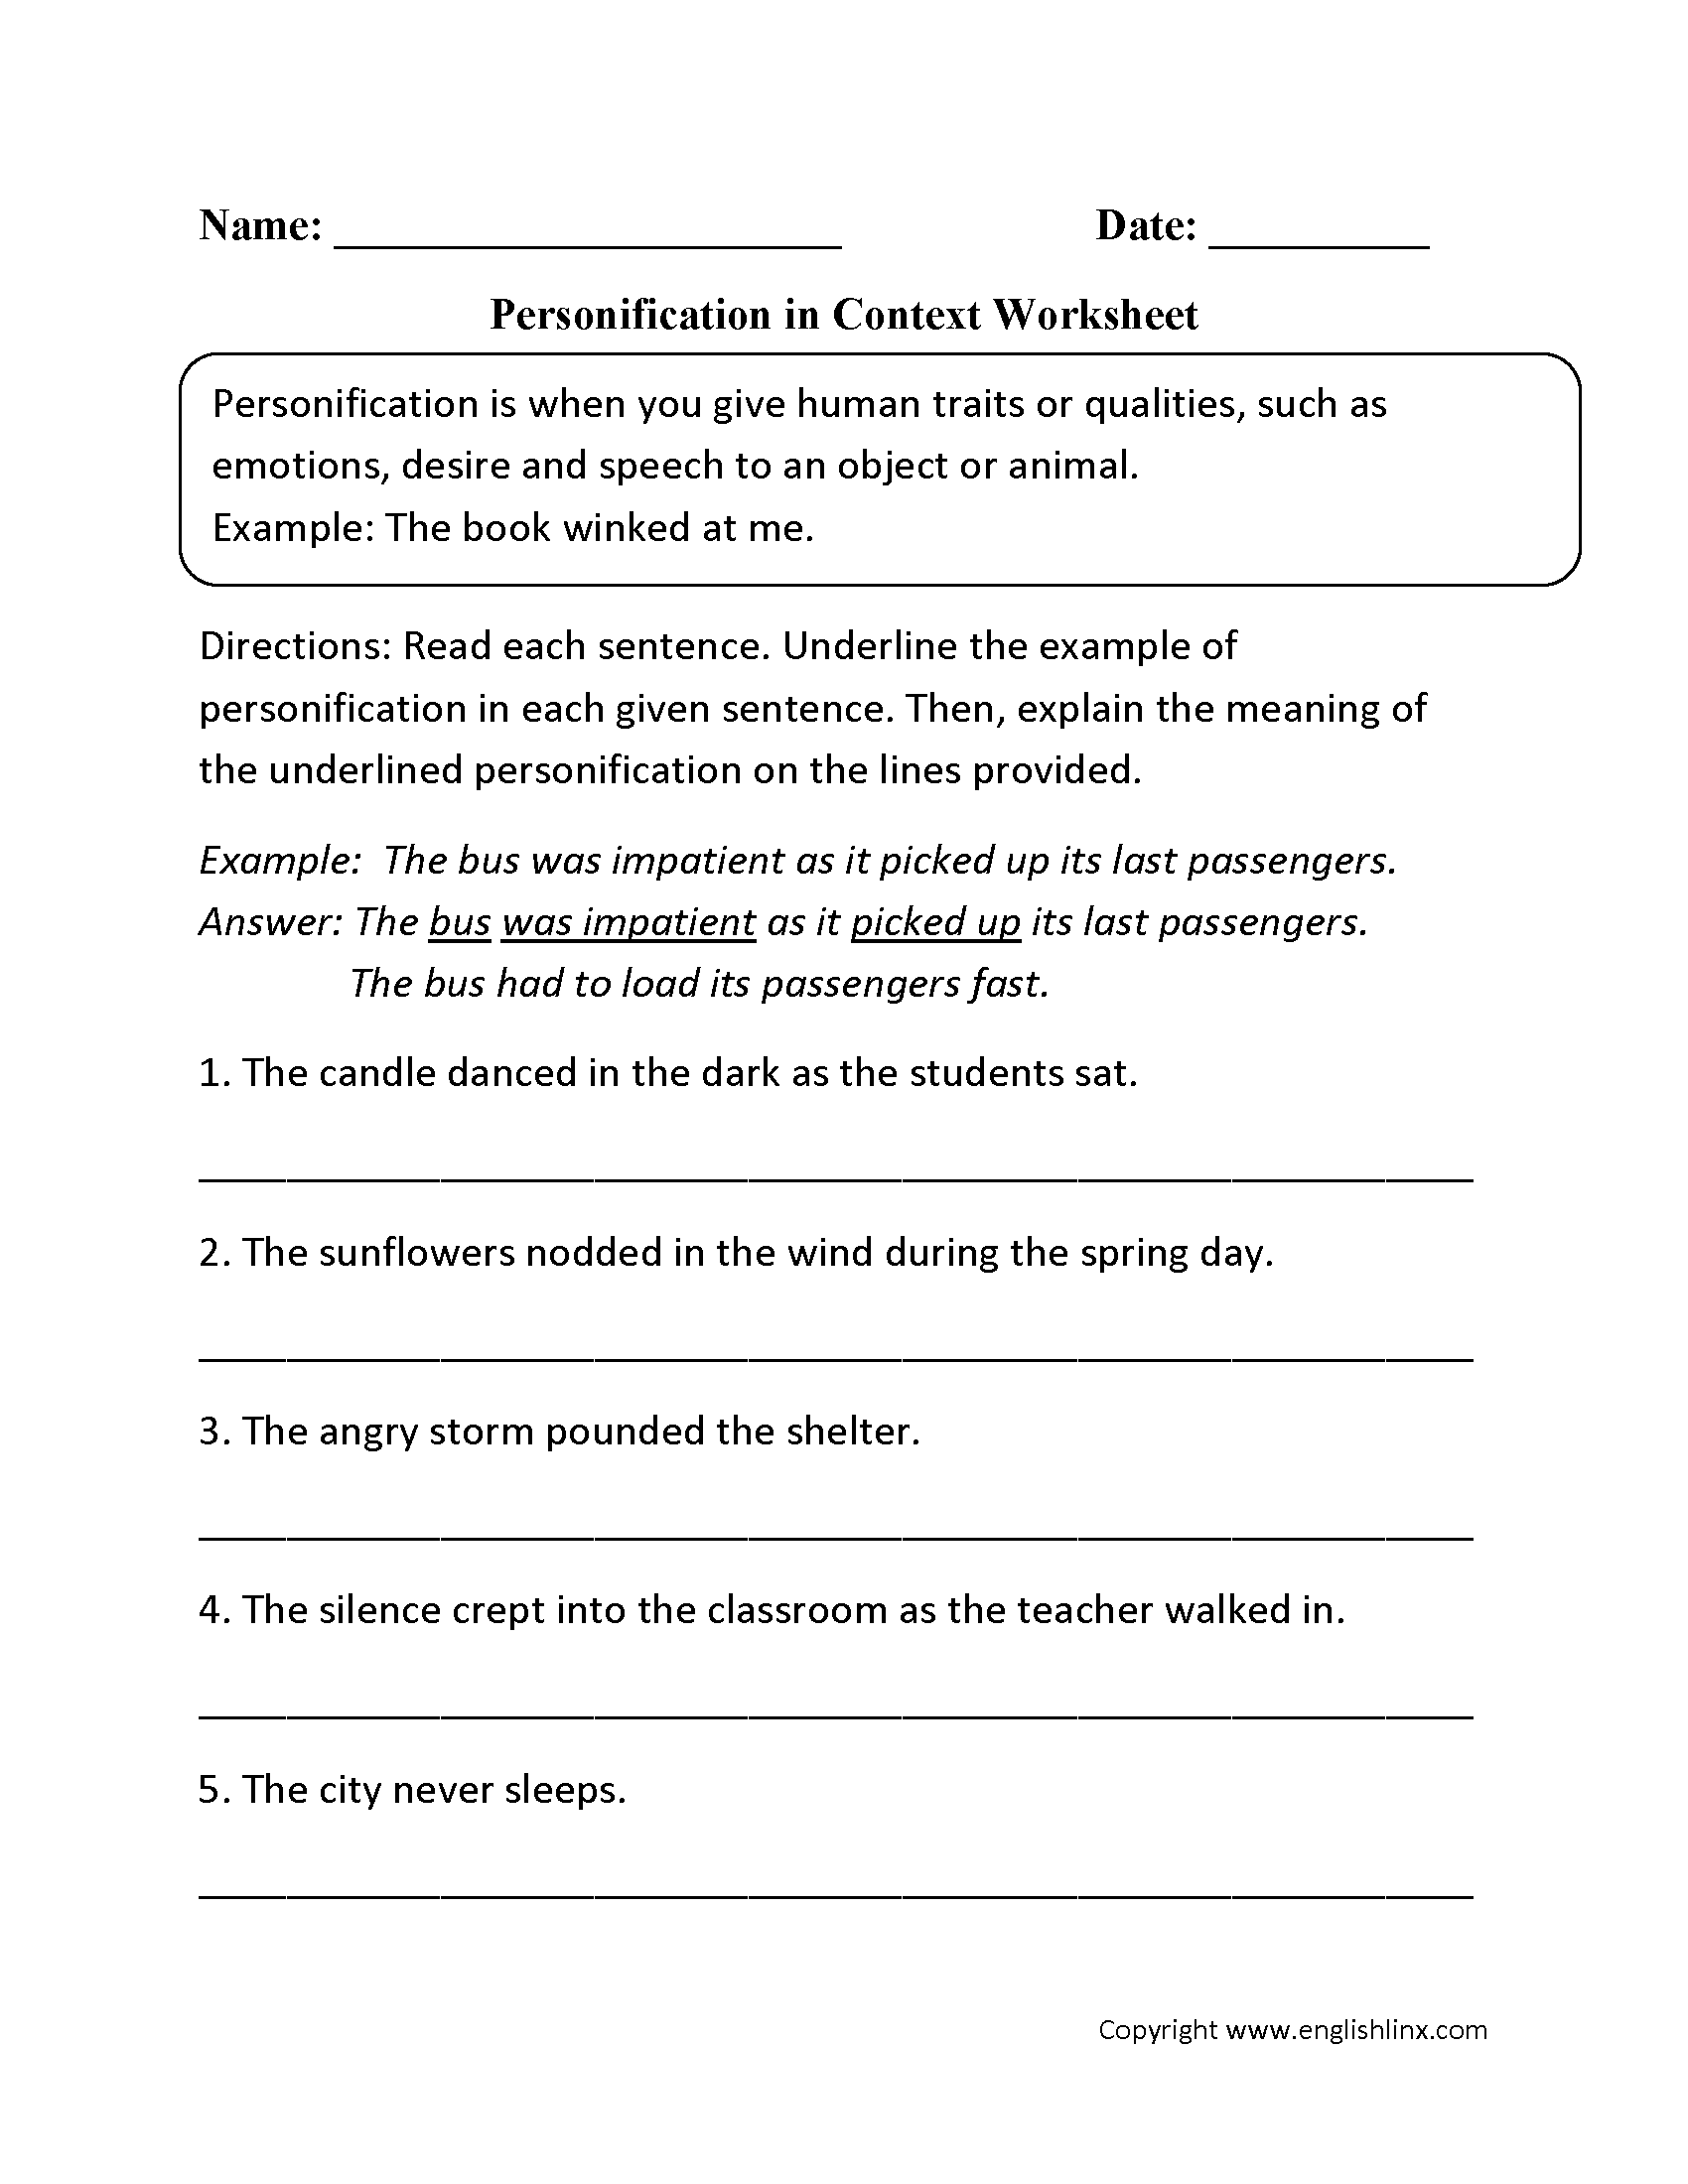 worksheet Metaphors Worksheets personification in context worksheet learning pinterest worksheet